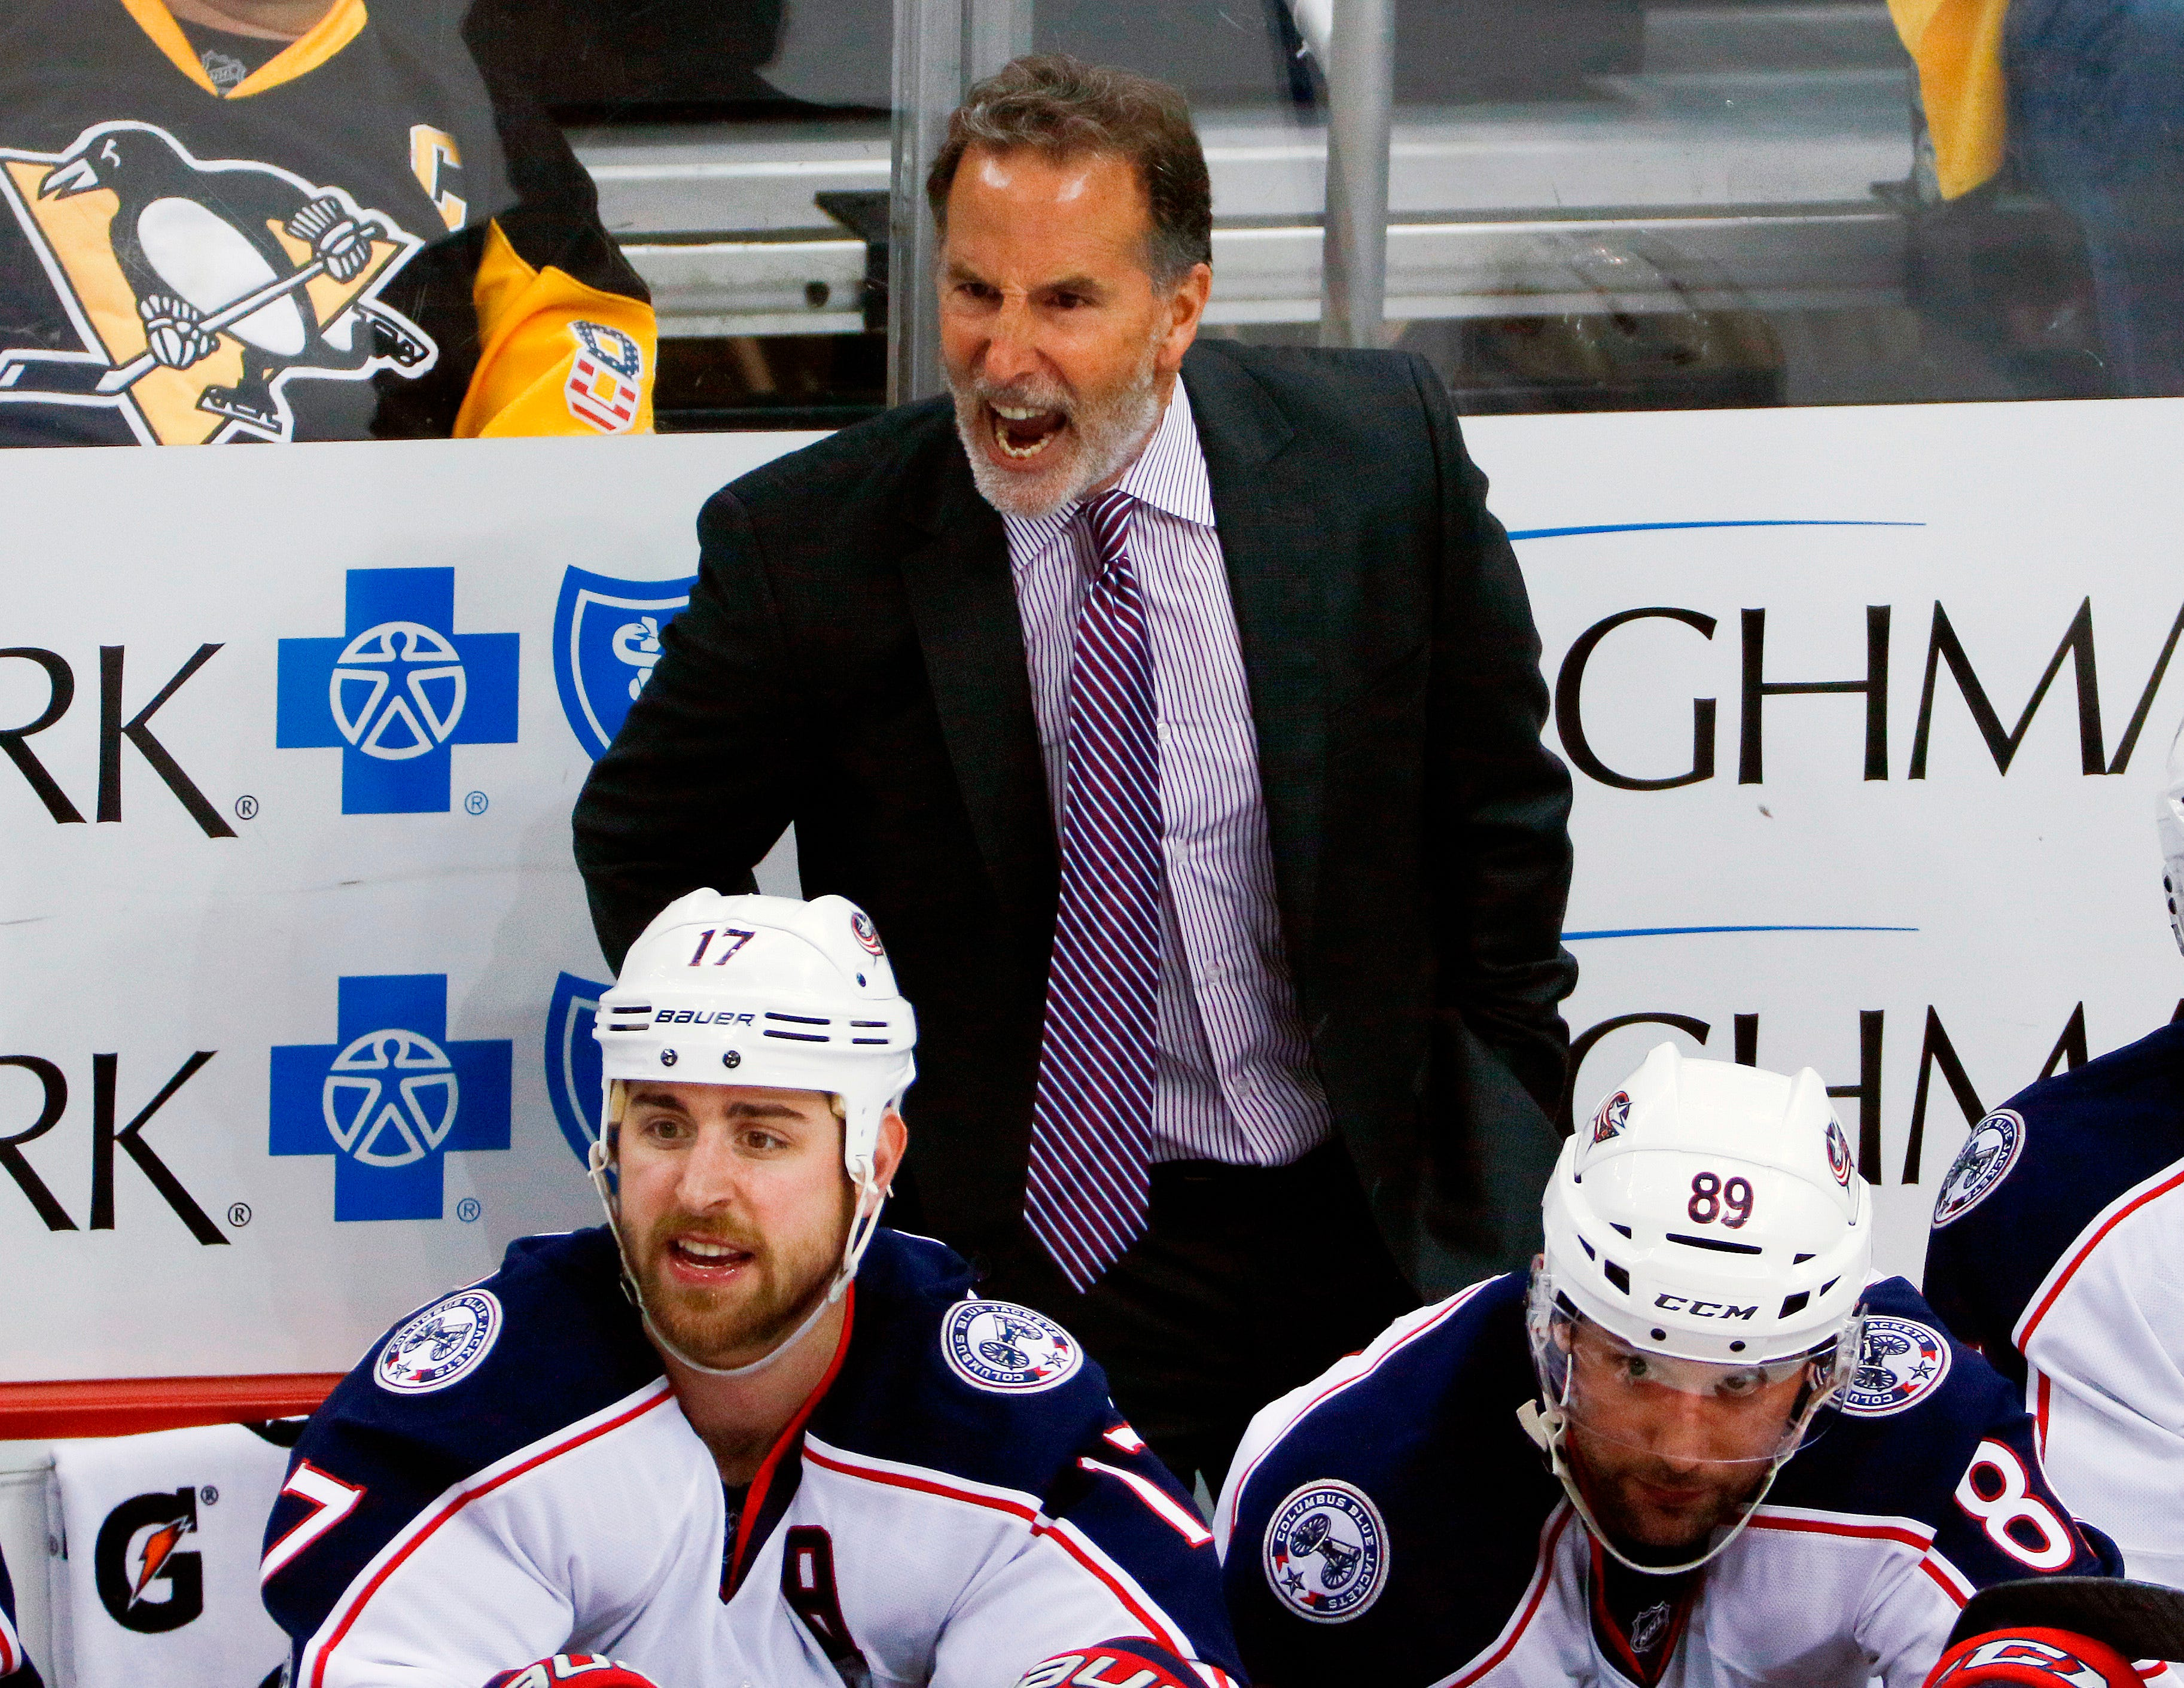 Torts: Plenty of blame to go around in playoff collapse